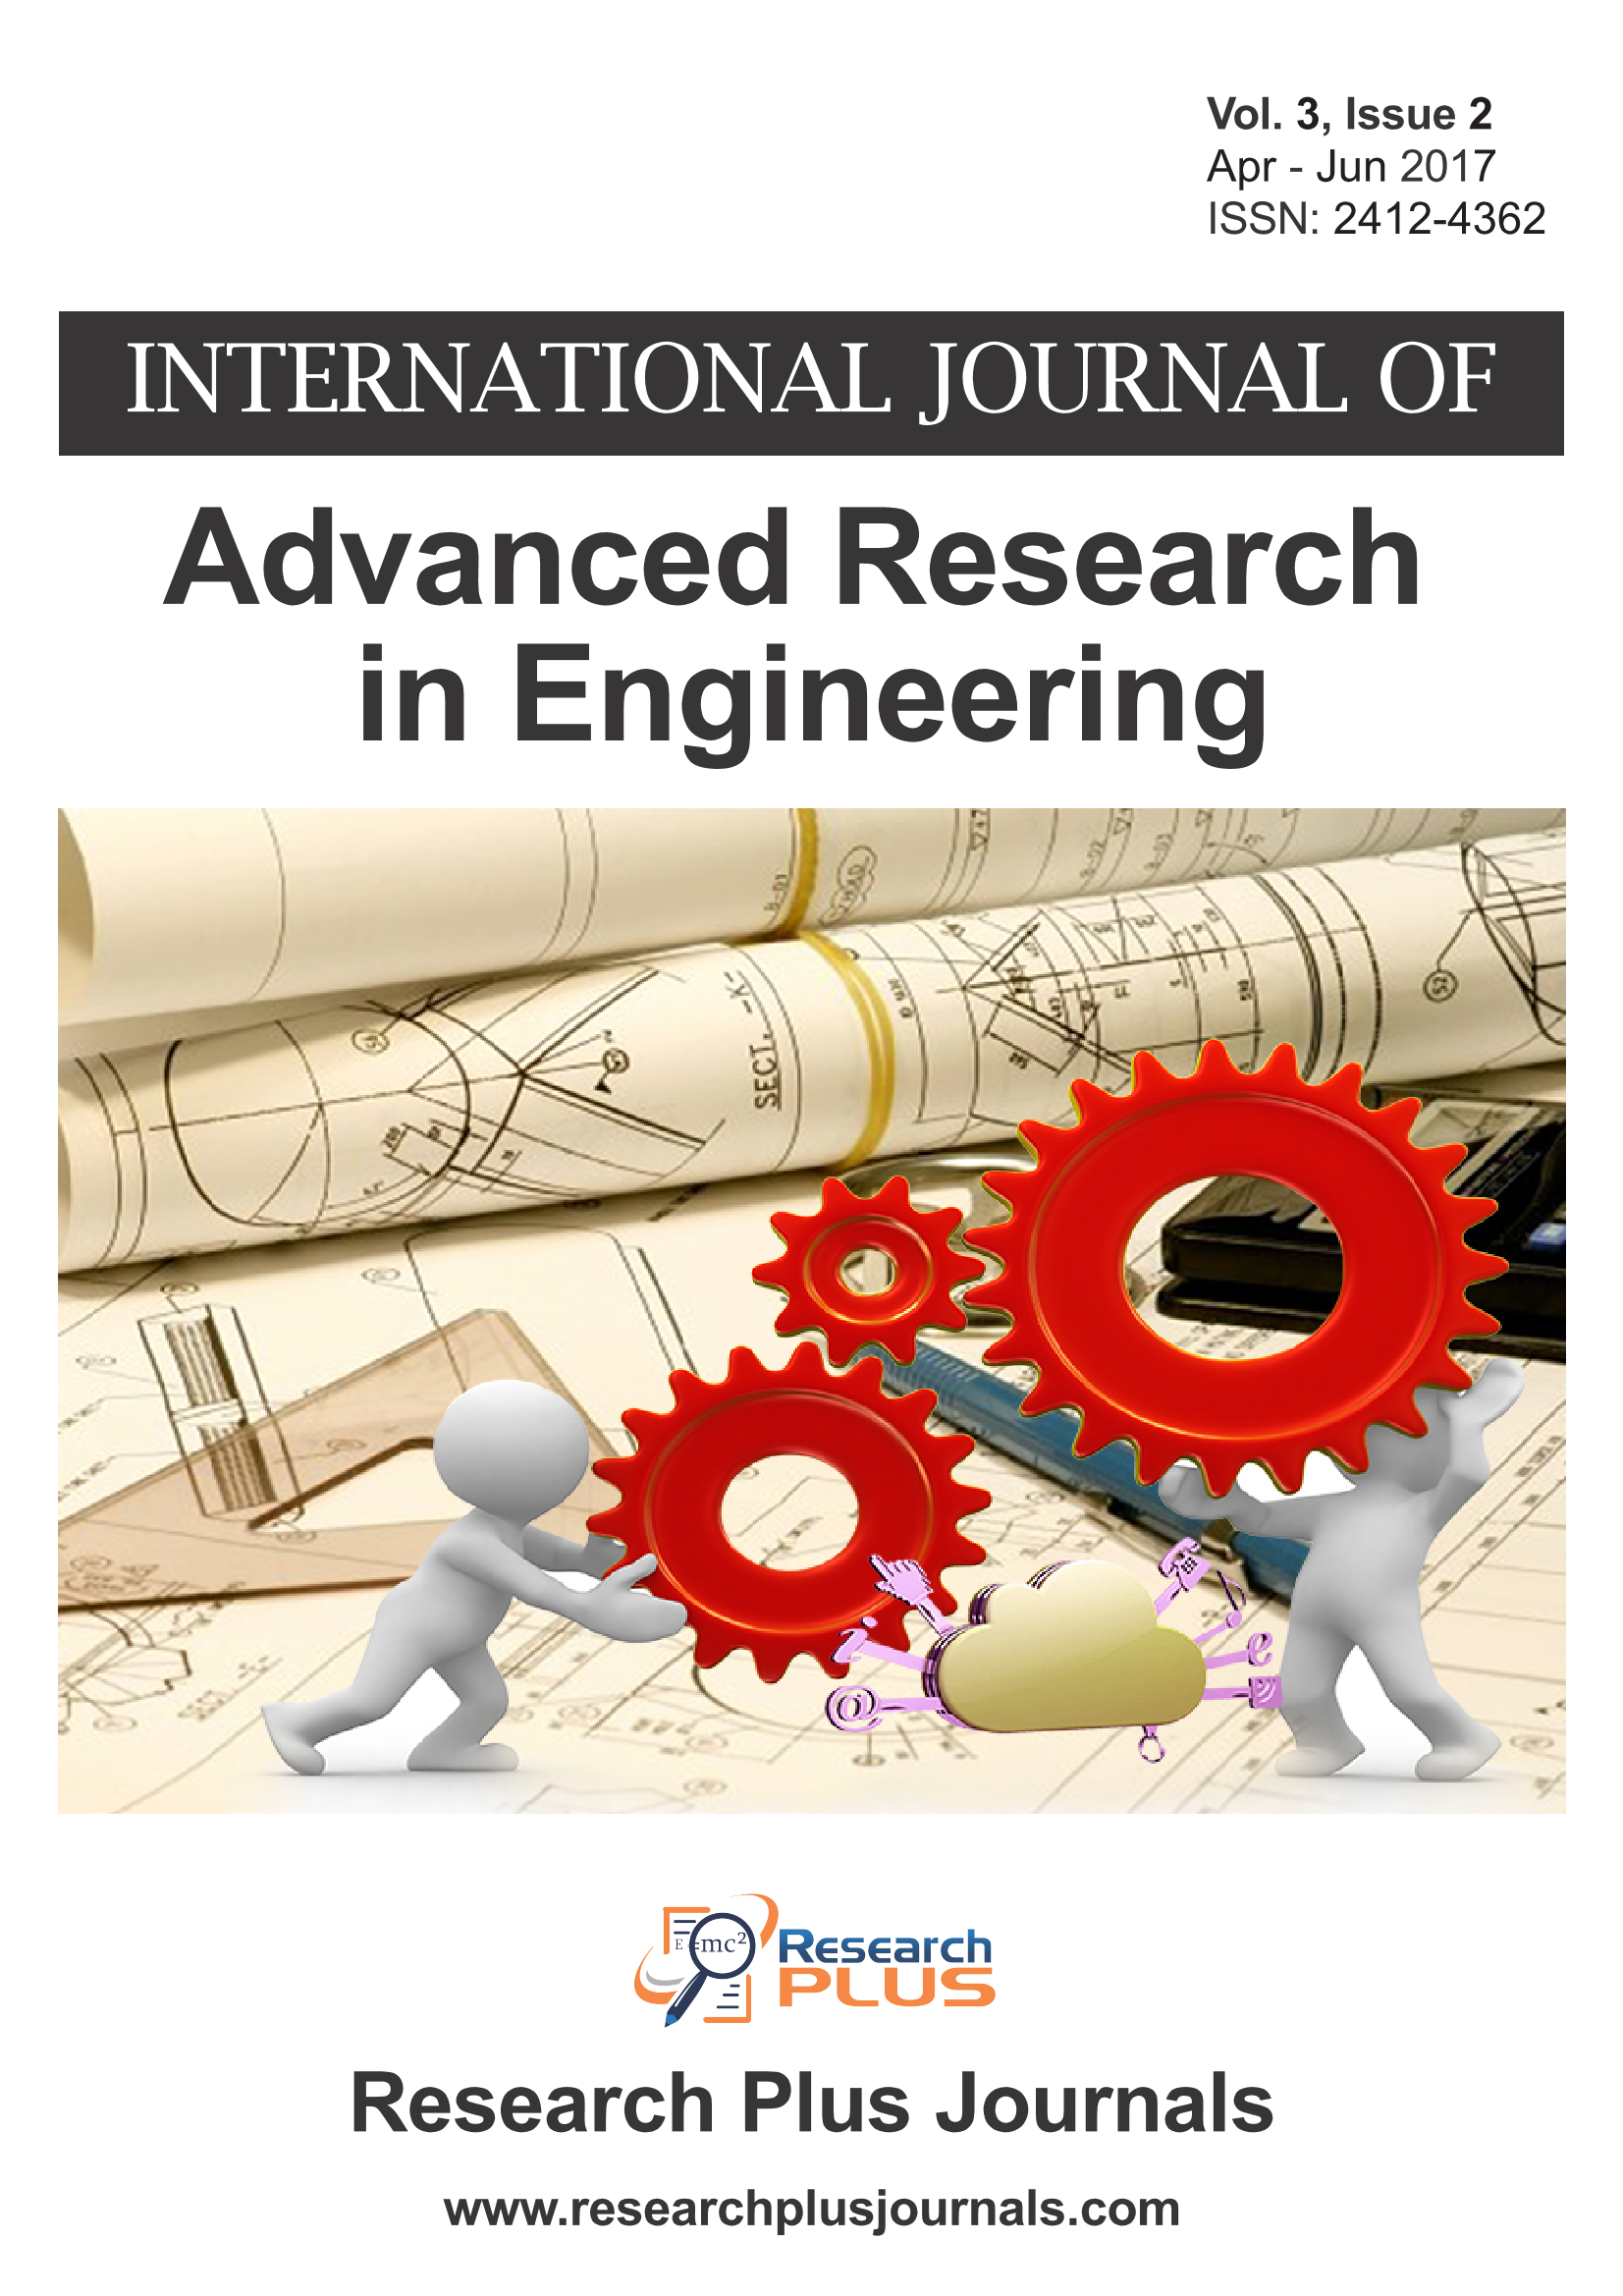 Volume 3, Issue 2, International Journal of Advanced Research in Engineering (IJARE)  (Online ISSN 2412-4362)